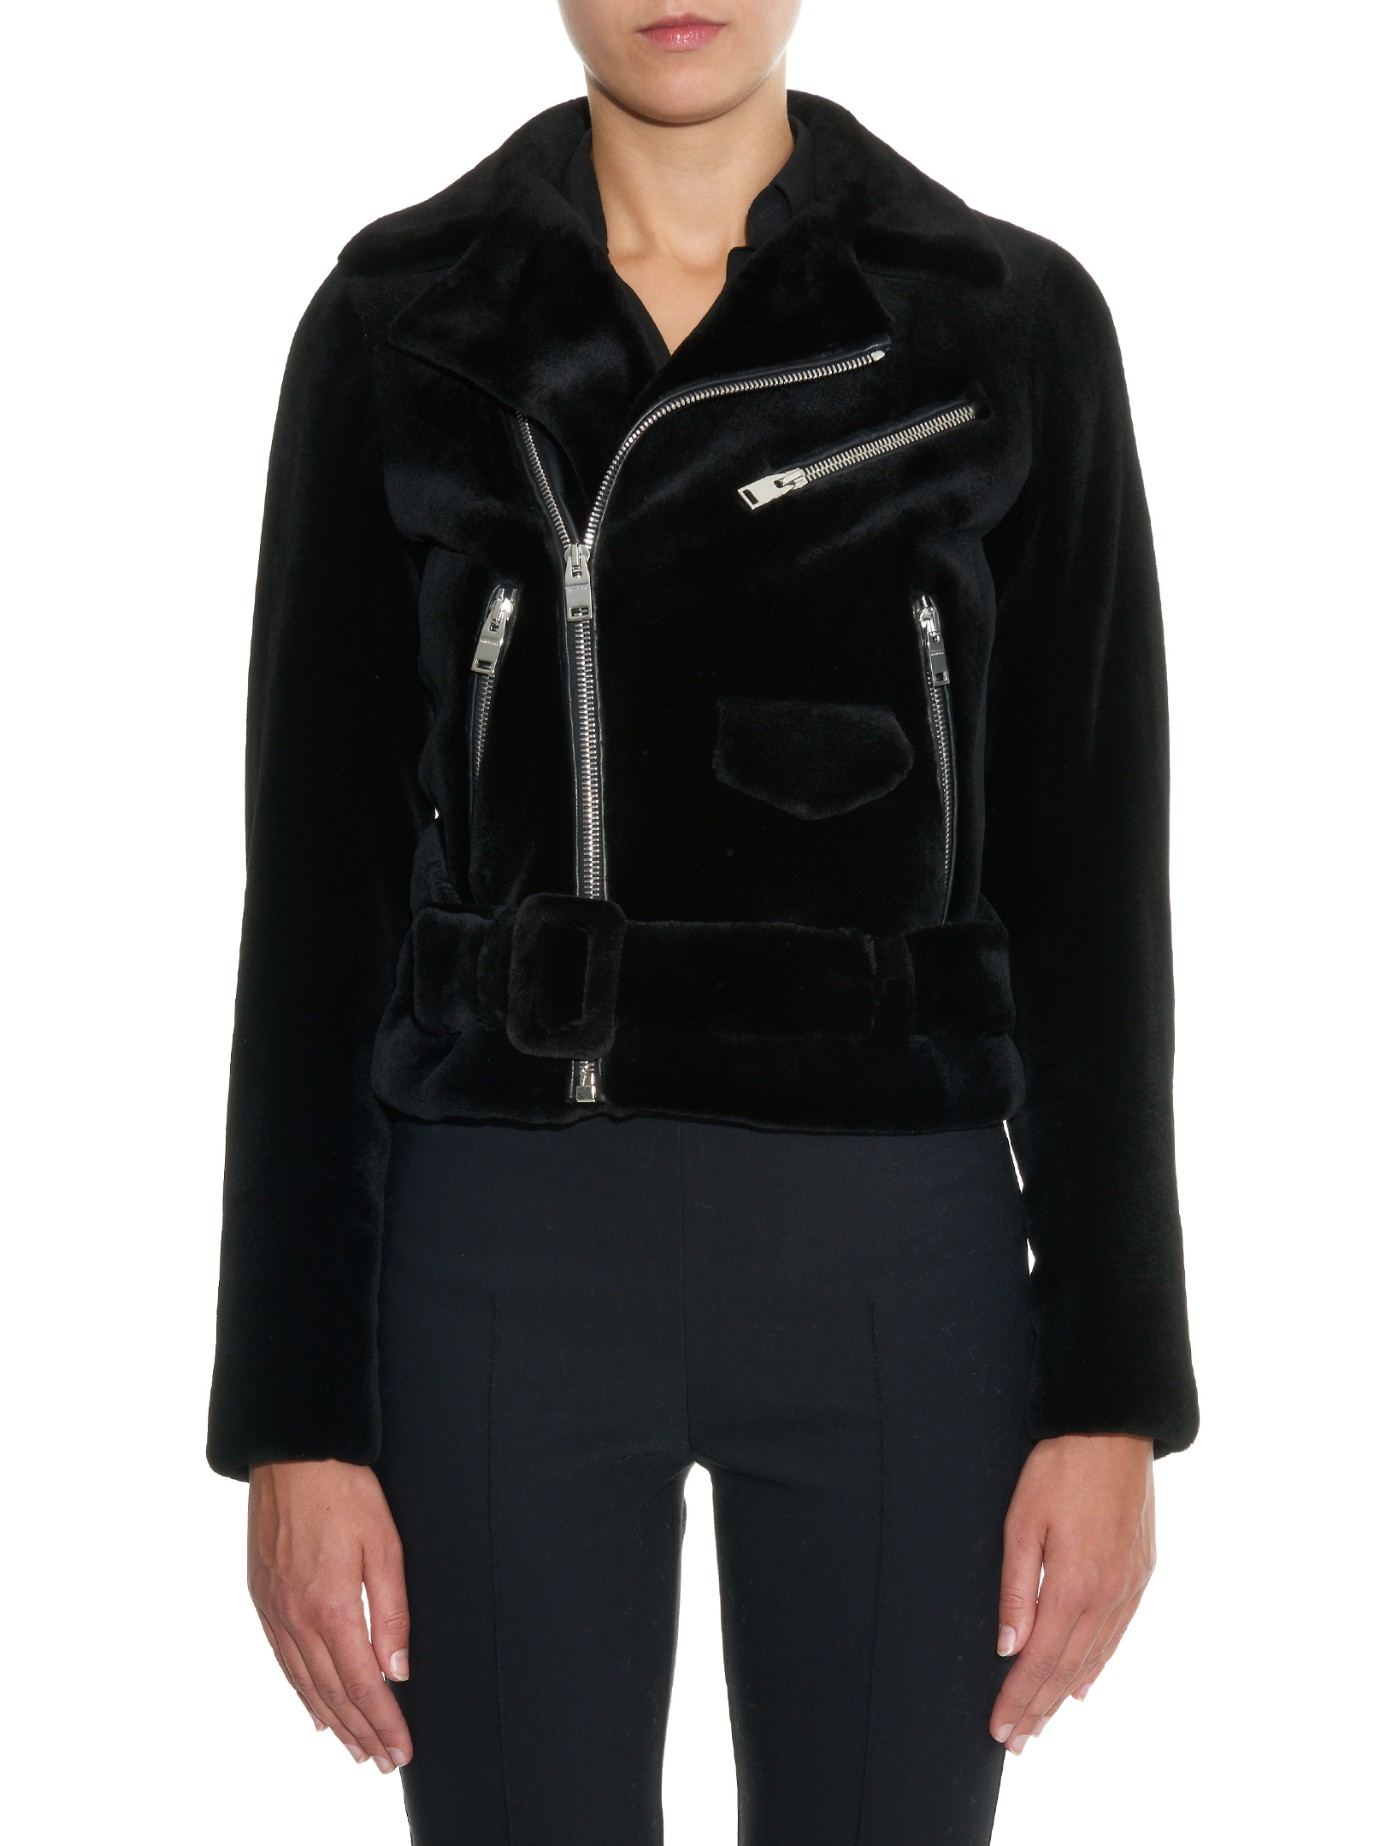 Balenciaga Mink-Fur Biker Jacket in Black | Lyst